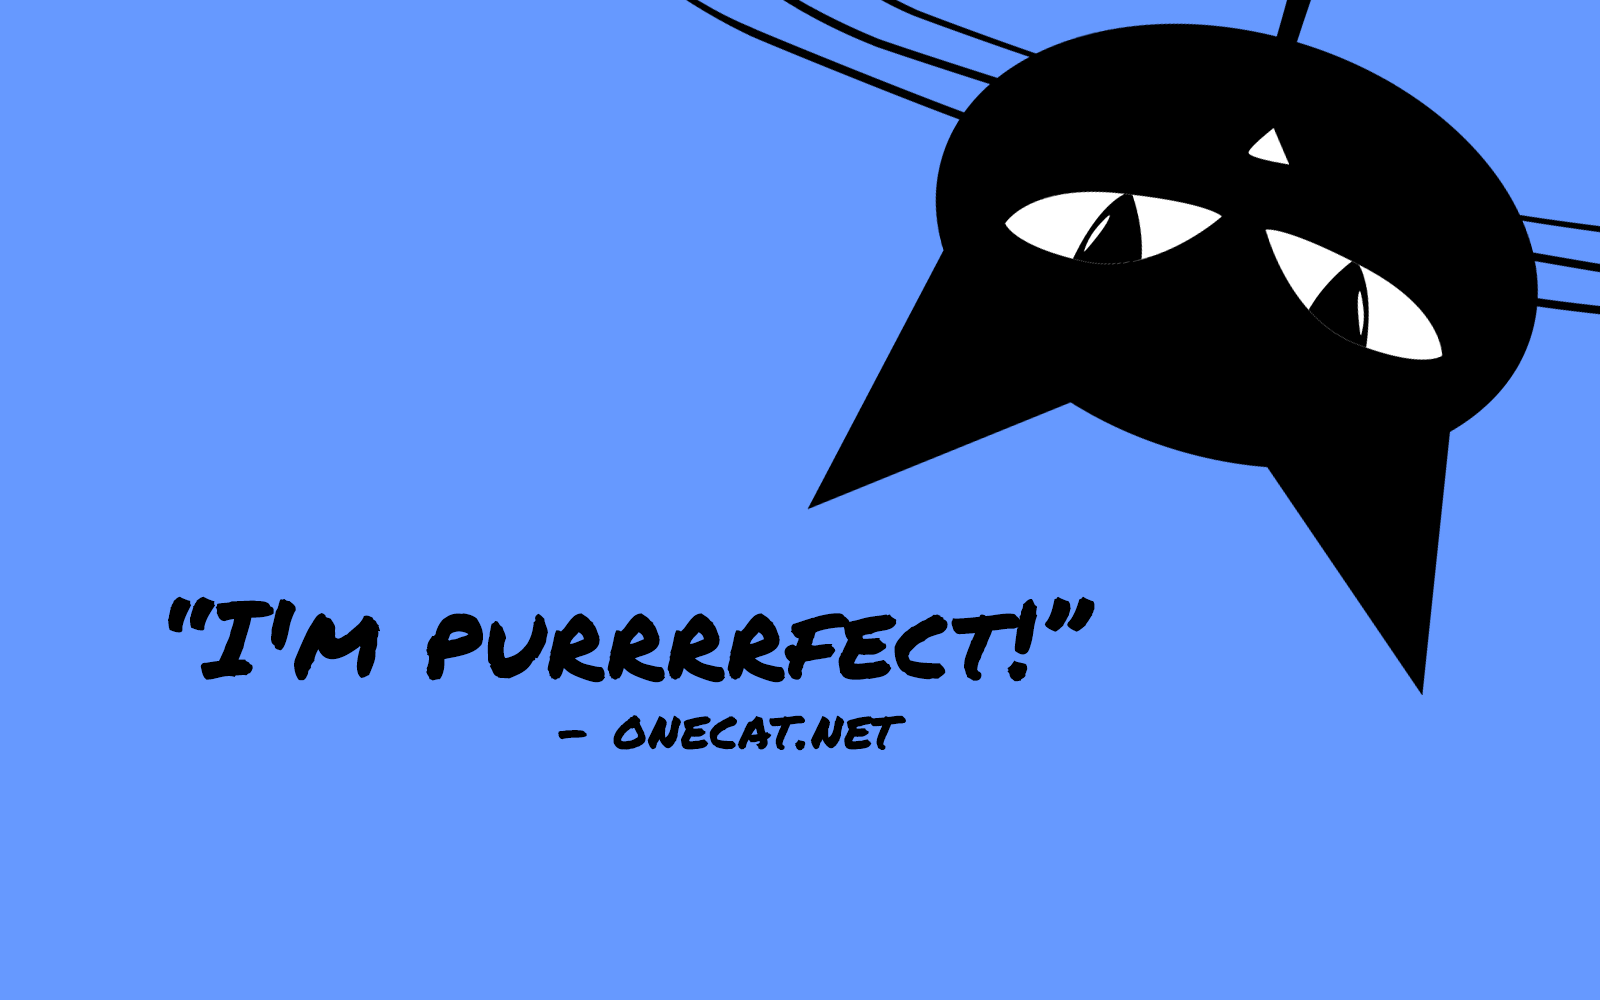 Cats Are Purrrfect